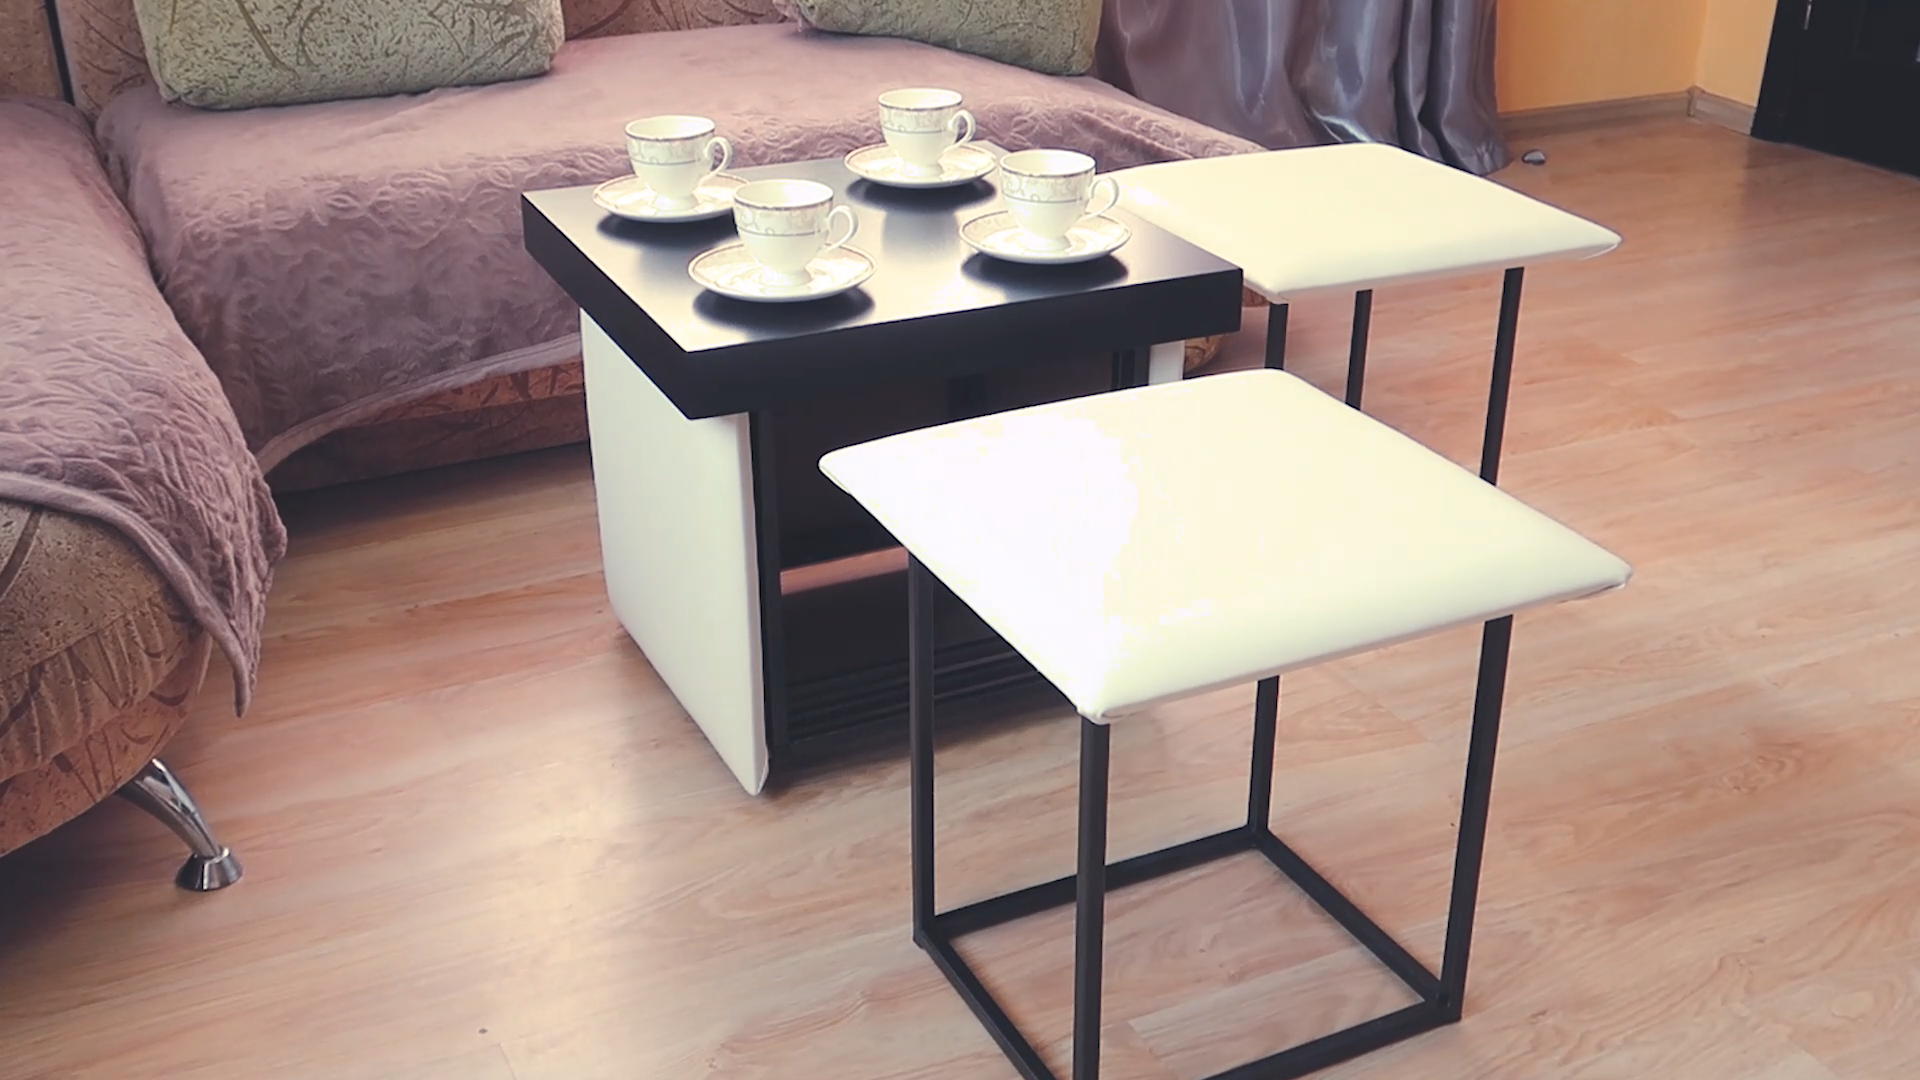 Cube 6 in 1 transformer ottomancoffee table or 5 chair   Etsy